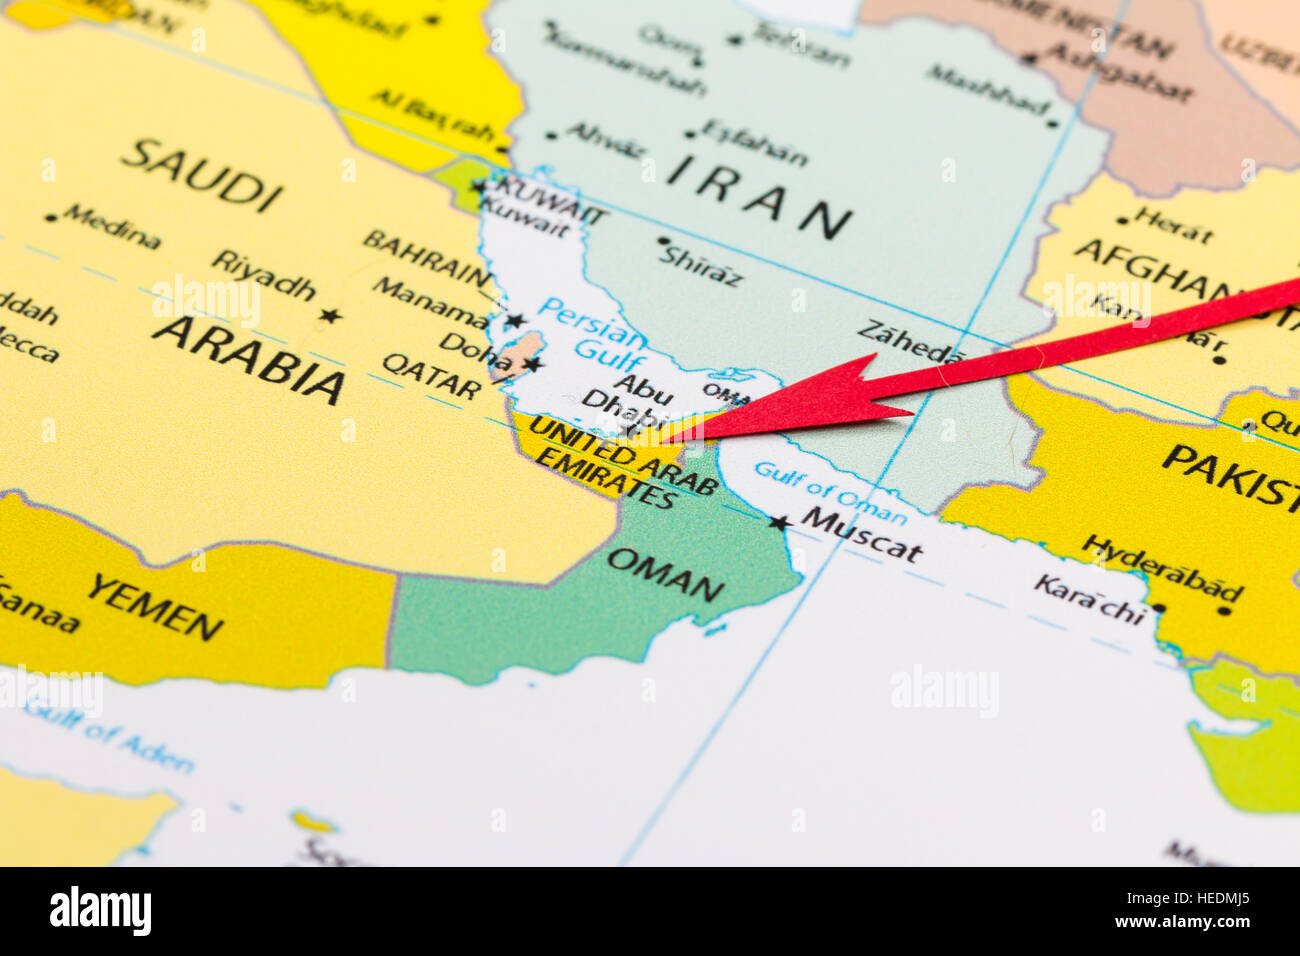 red arrow pointing united arab emirates on the map of asia continent. red arrow pointing united arab emirates on the map of asia